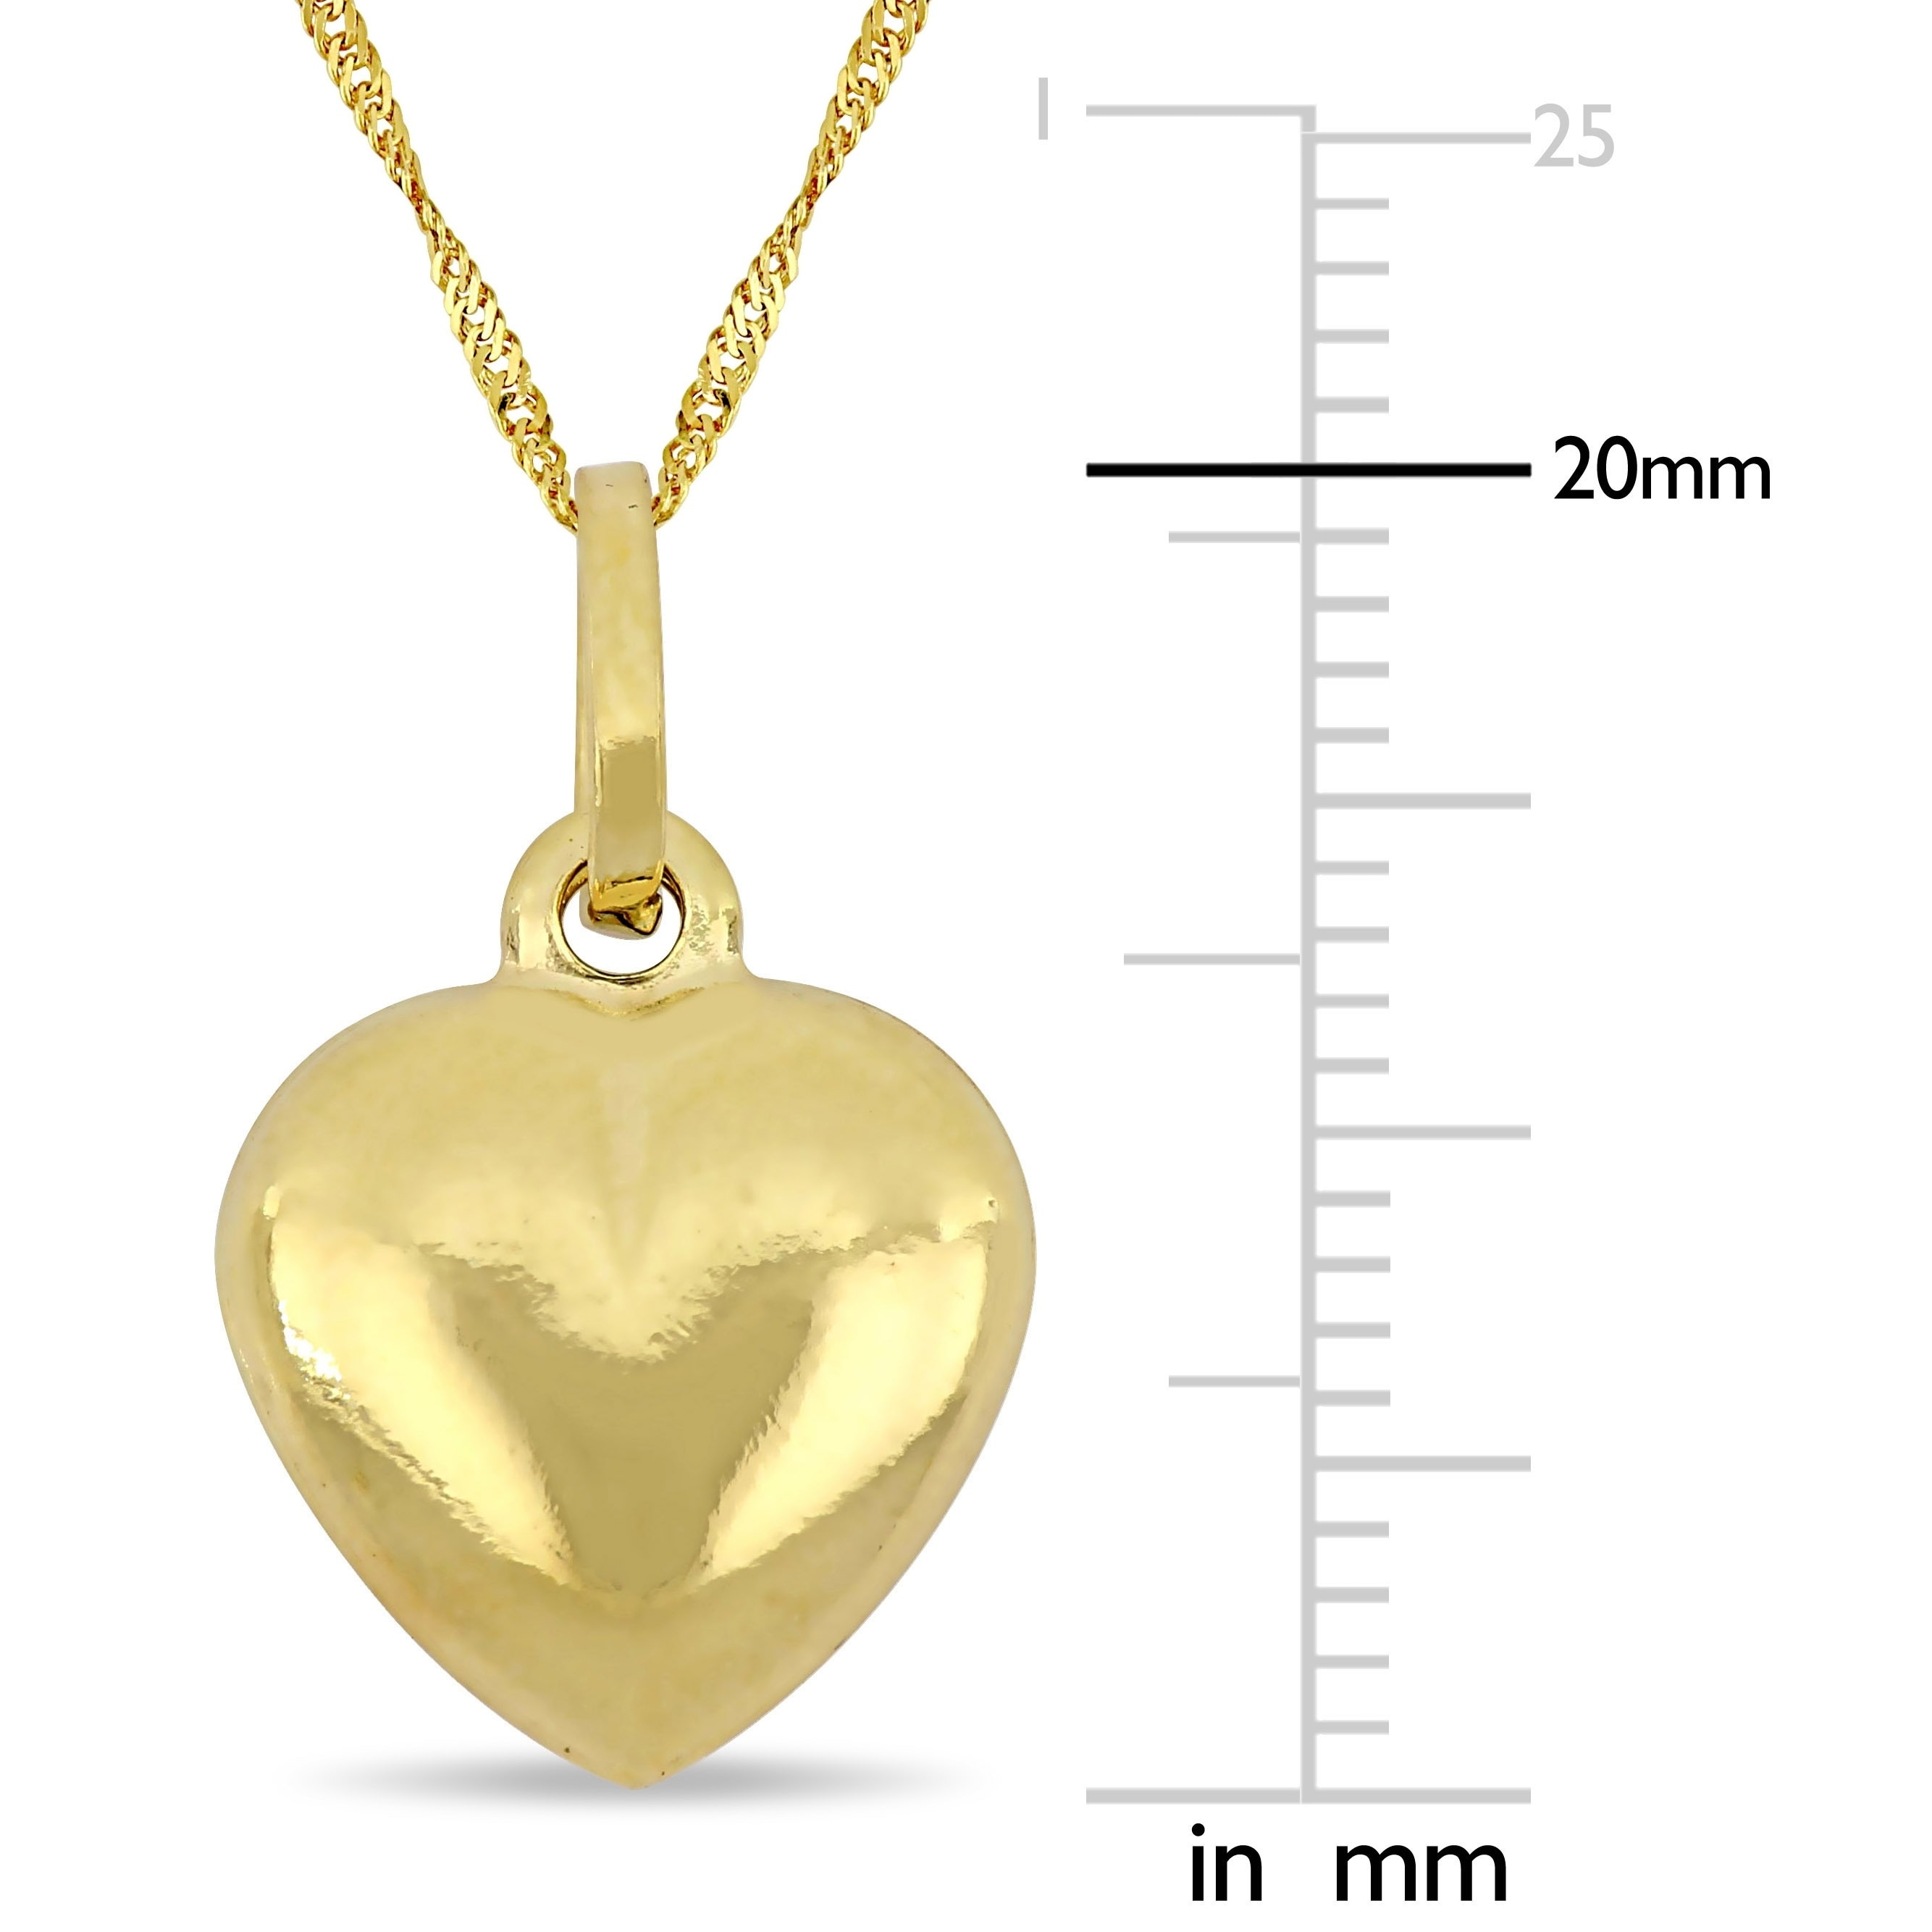 14K Yellow Gold I Love You Heart Charm Pendant with 0.6mm Box Chain Necklace